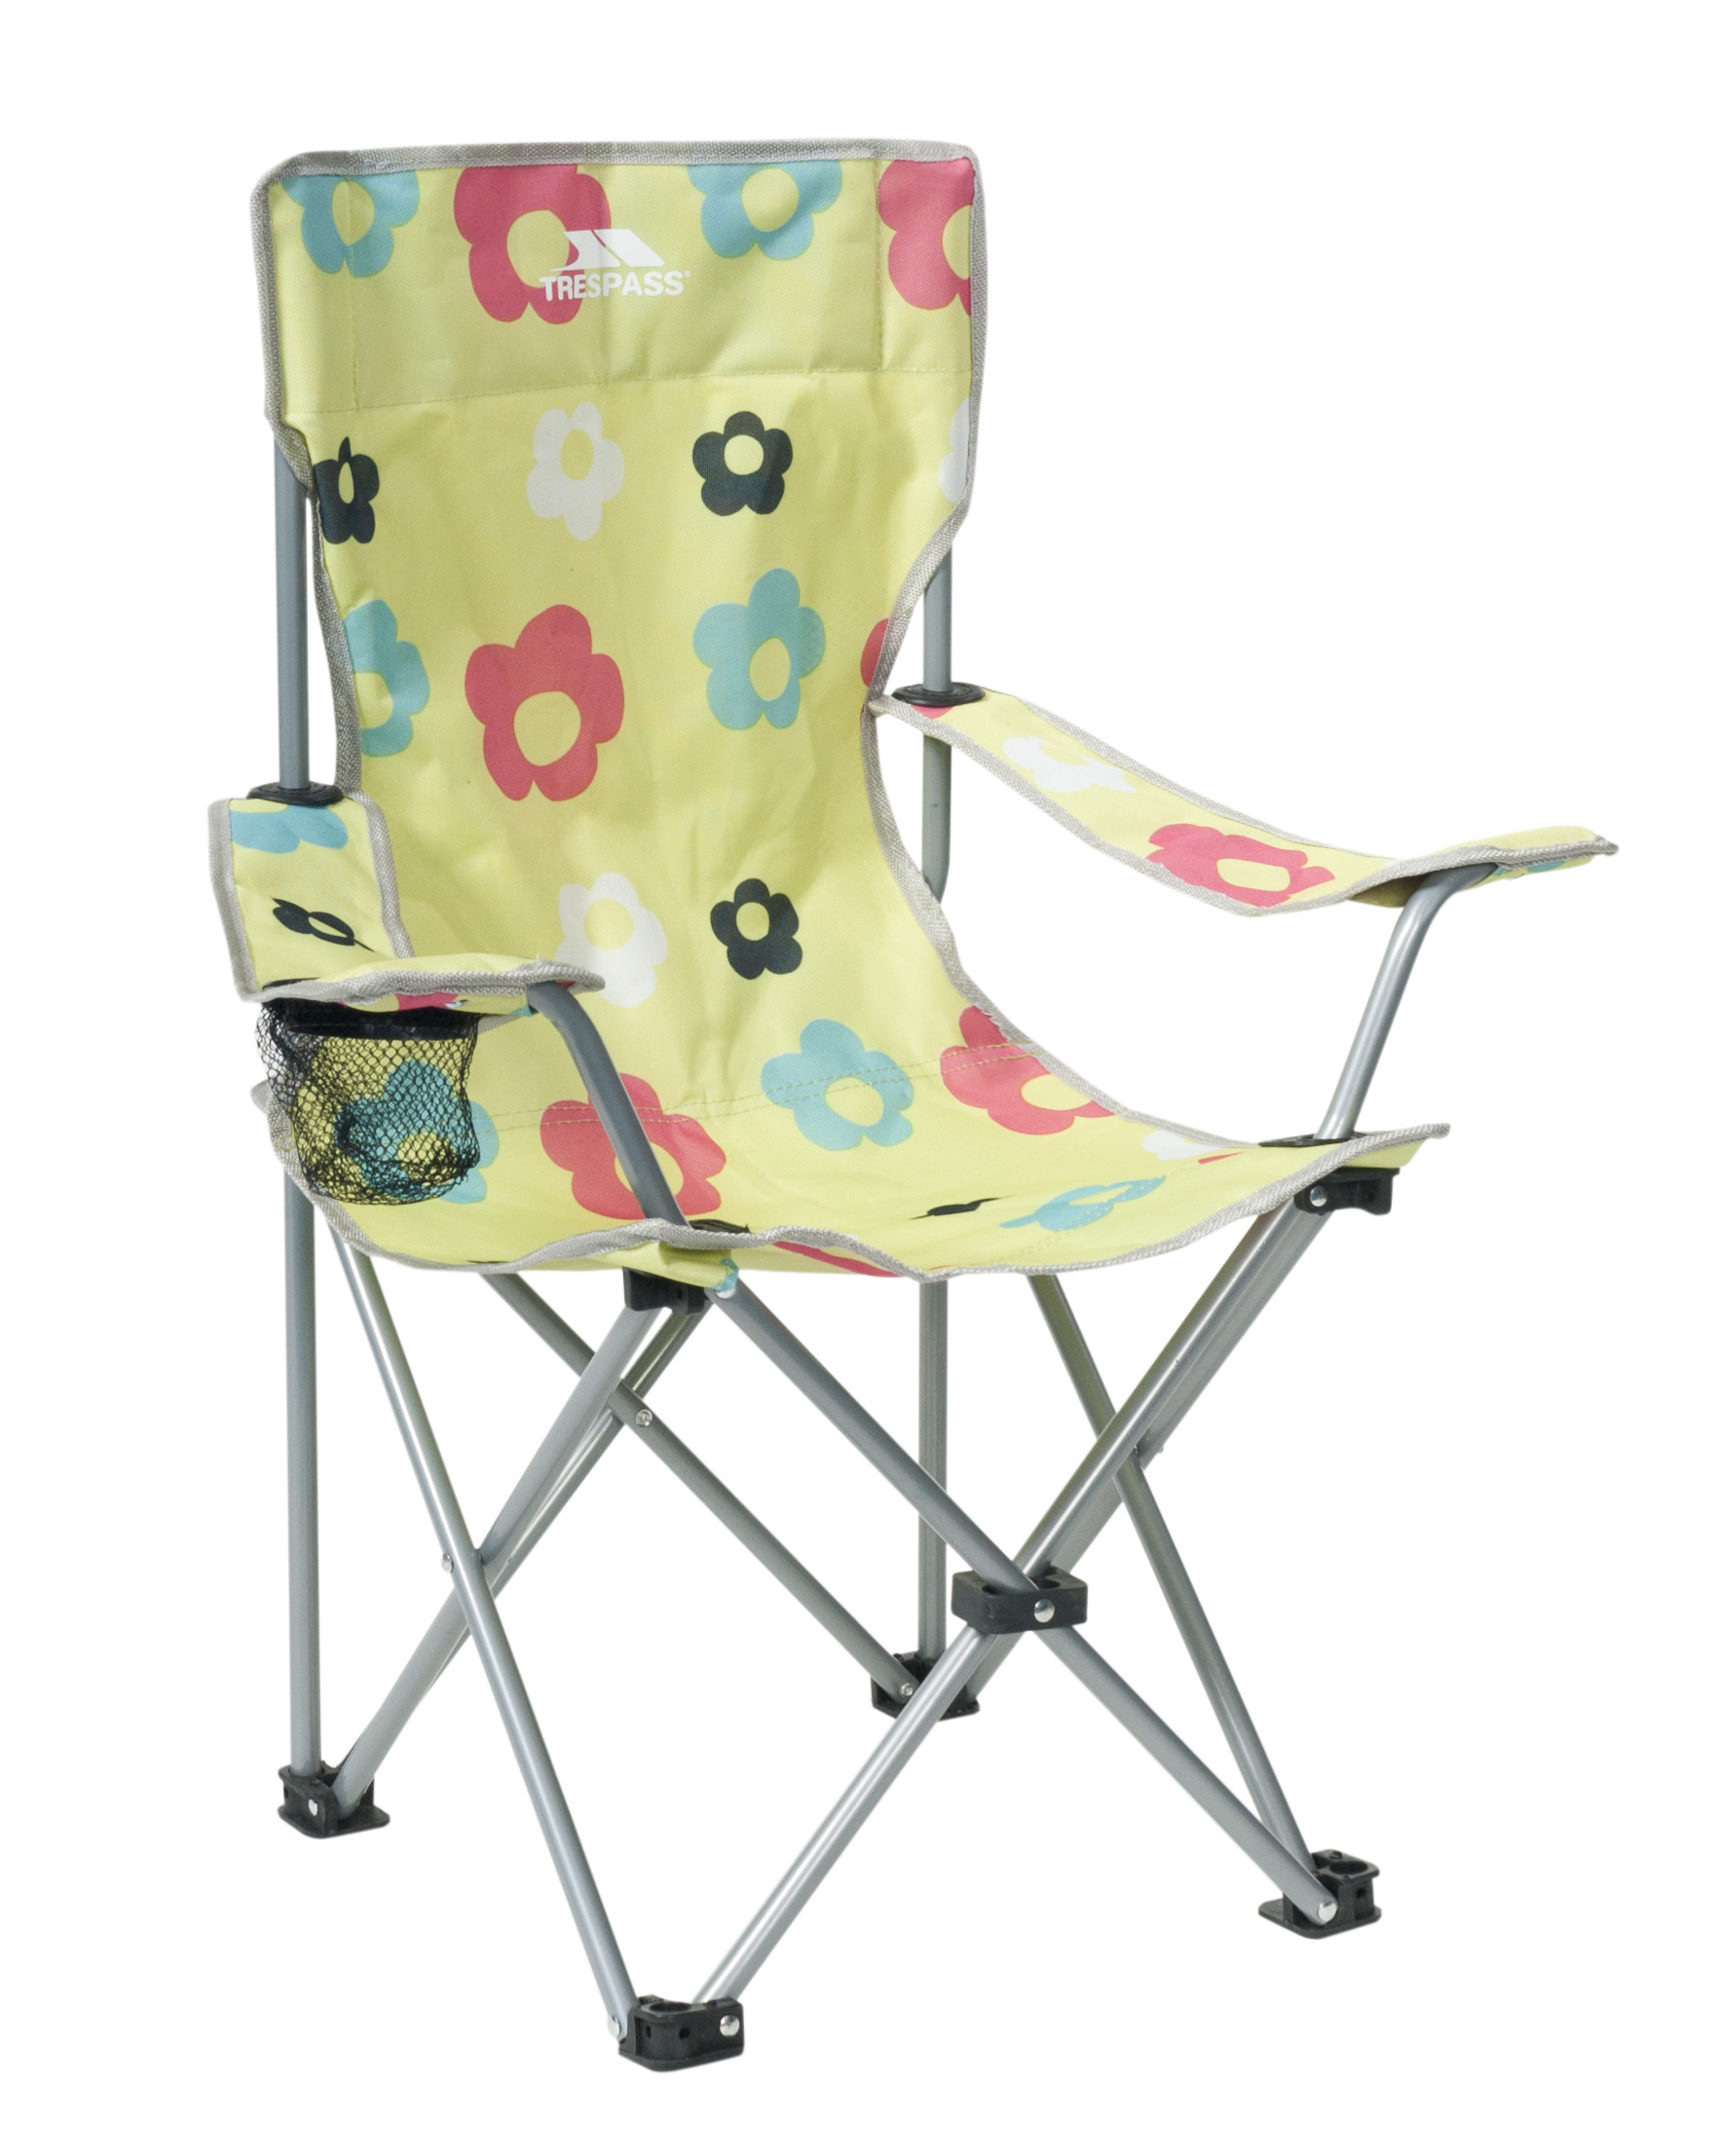 Kids Folding Chair Trespass Joejoe Kids Folding Garden Camping Chair With